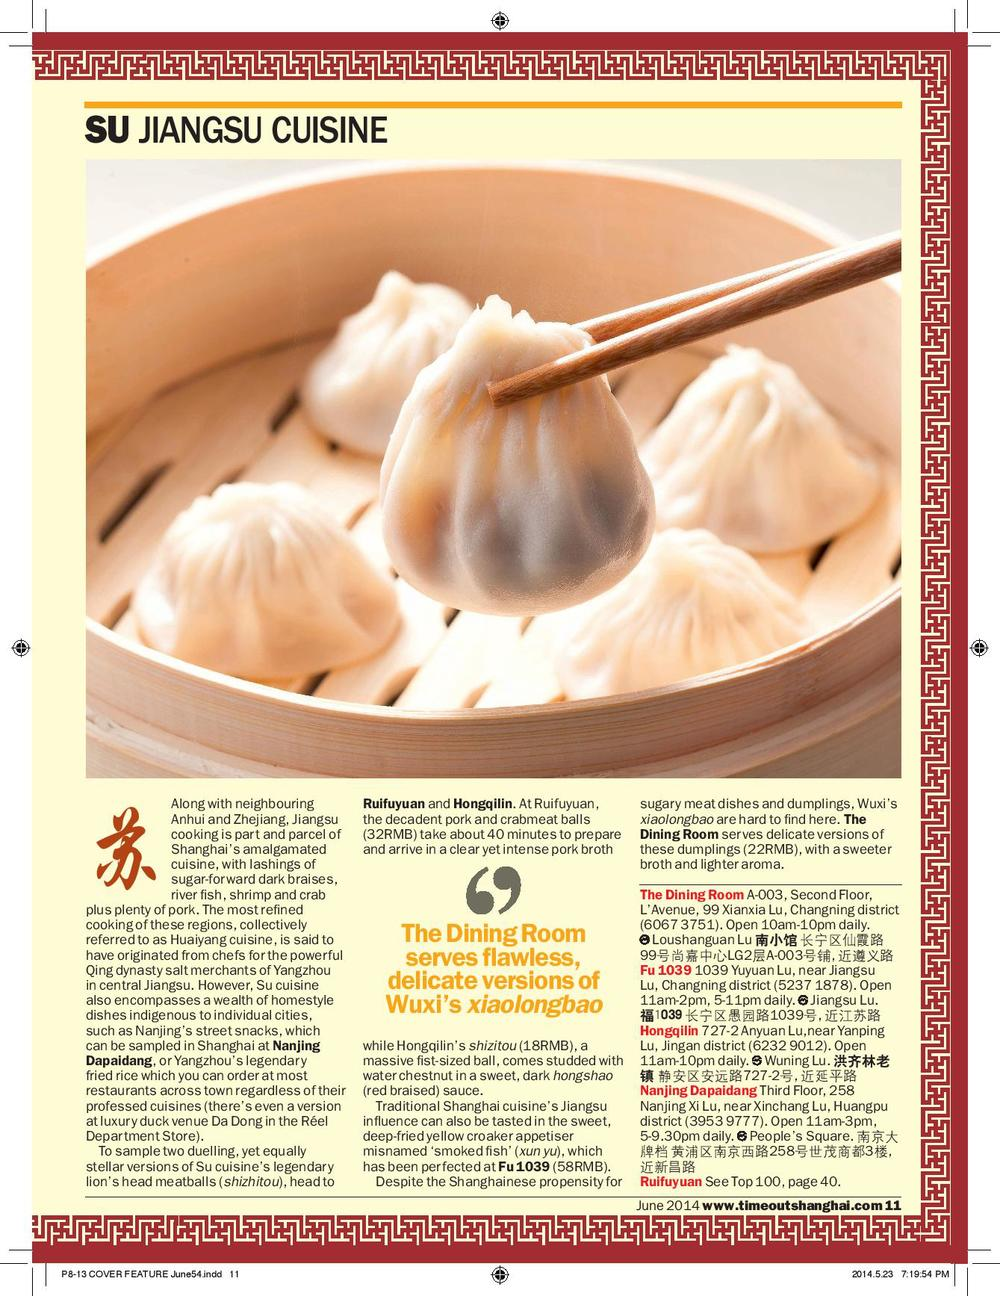 P8-13 COVER FEATURE Eight Great Cuisines June 2014-page-004.jpg